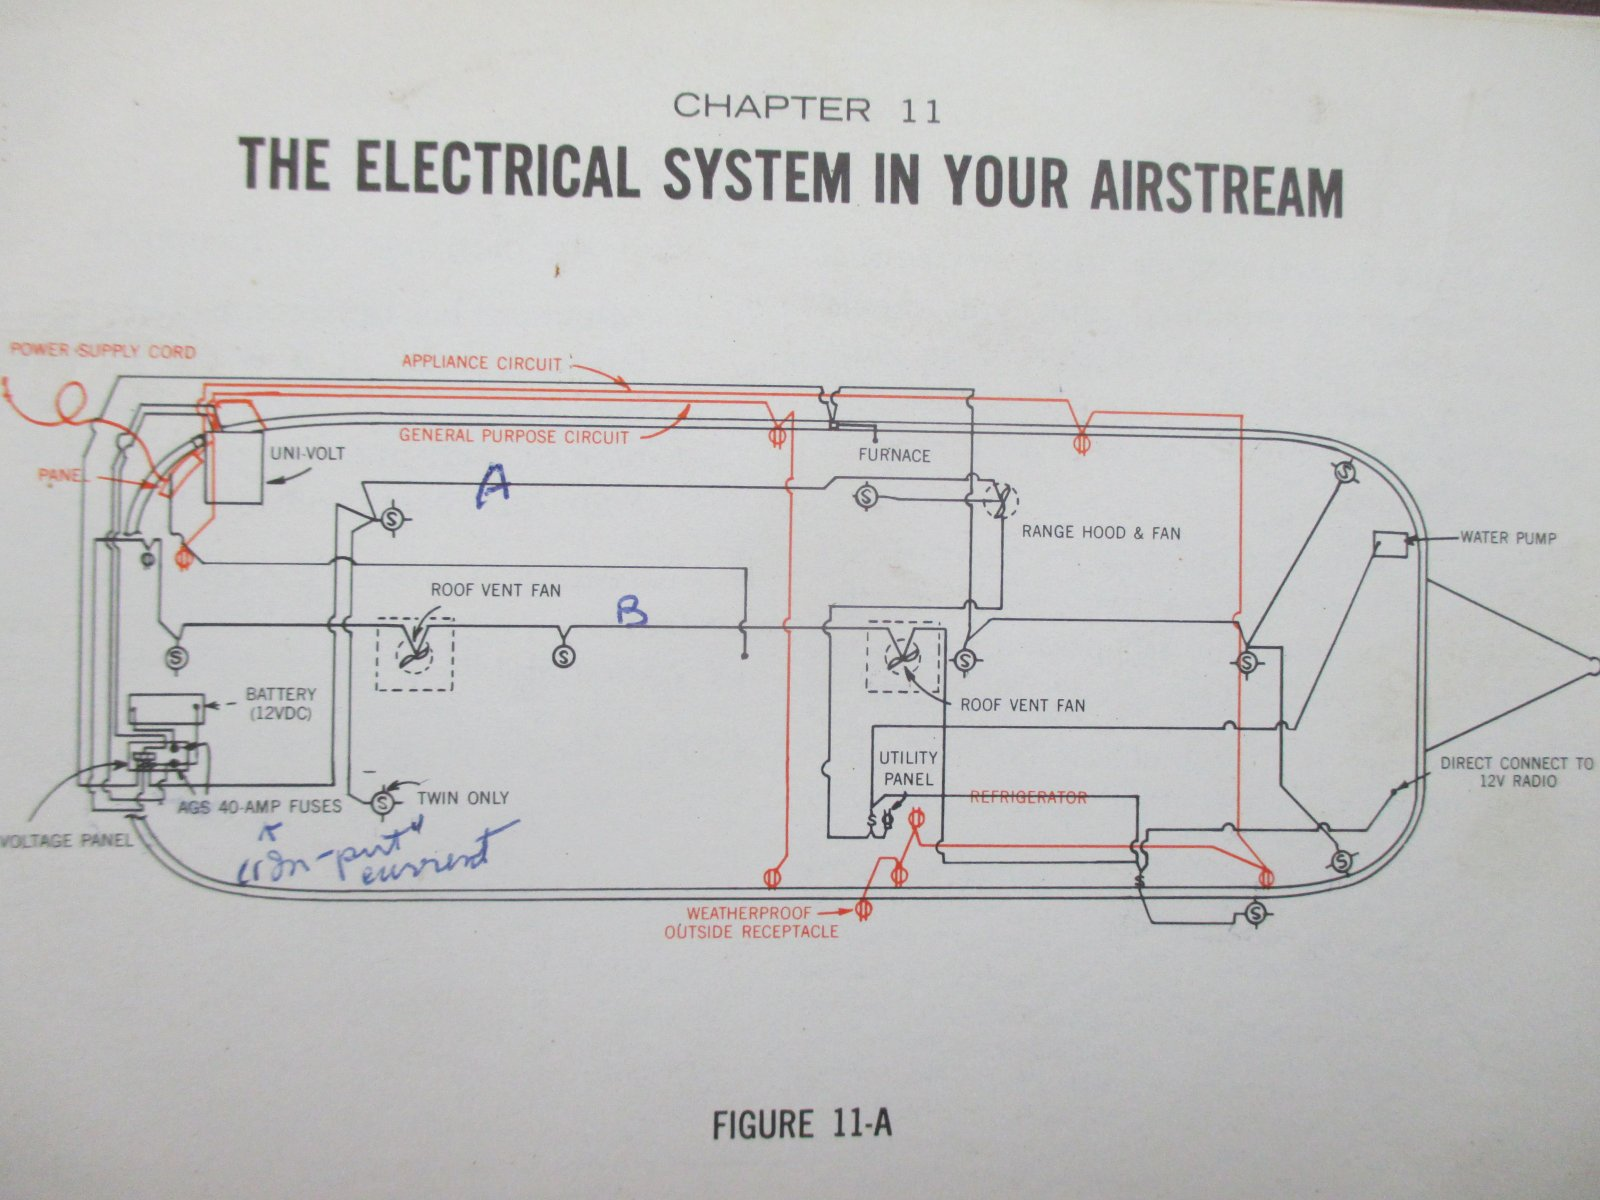 1955 Chevy Bel Air Wiring Diagram Library 1956 Fuse Box Location 12 Volt For 1966 Airstream Gallery Writing Sample Ideas And Guide 1957 Chevrolet